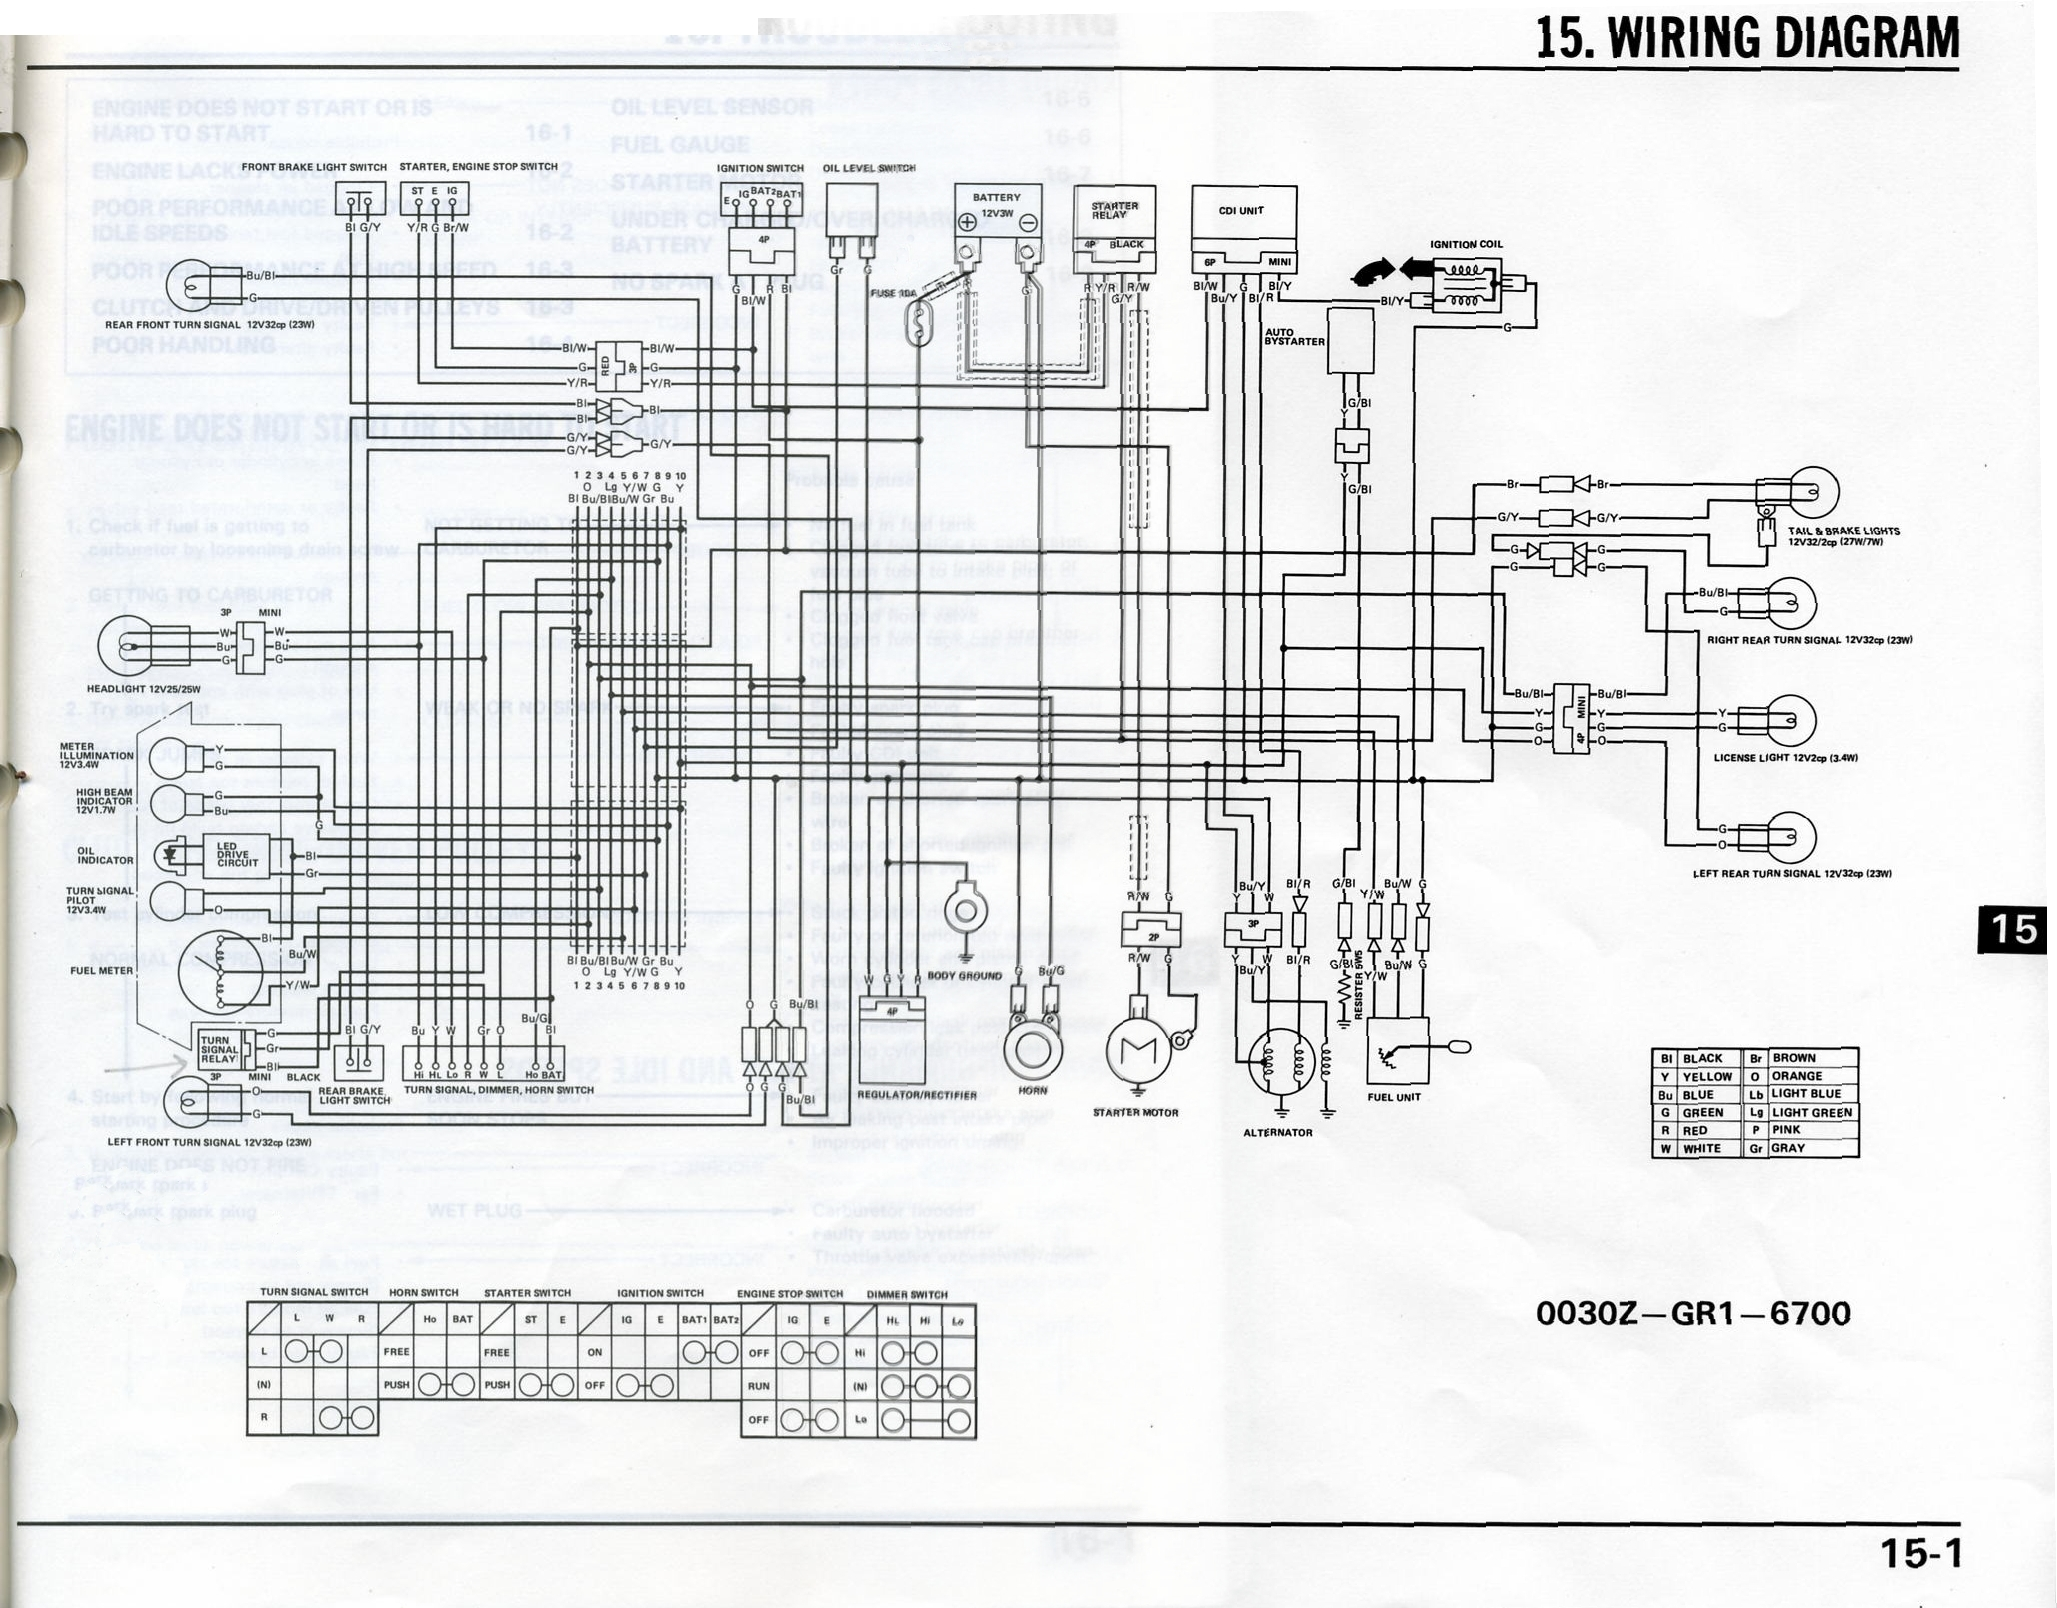 honda elite 250 diagram wiring 89 honda elite wiring